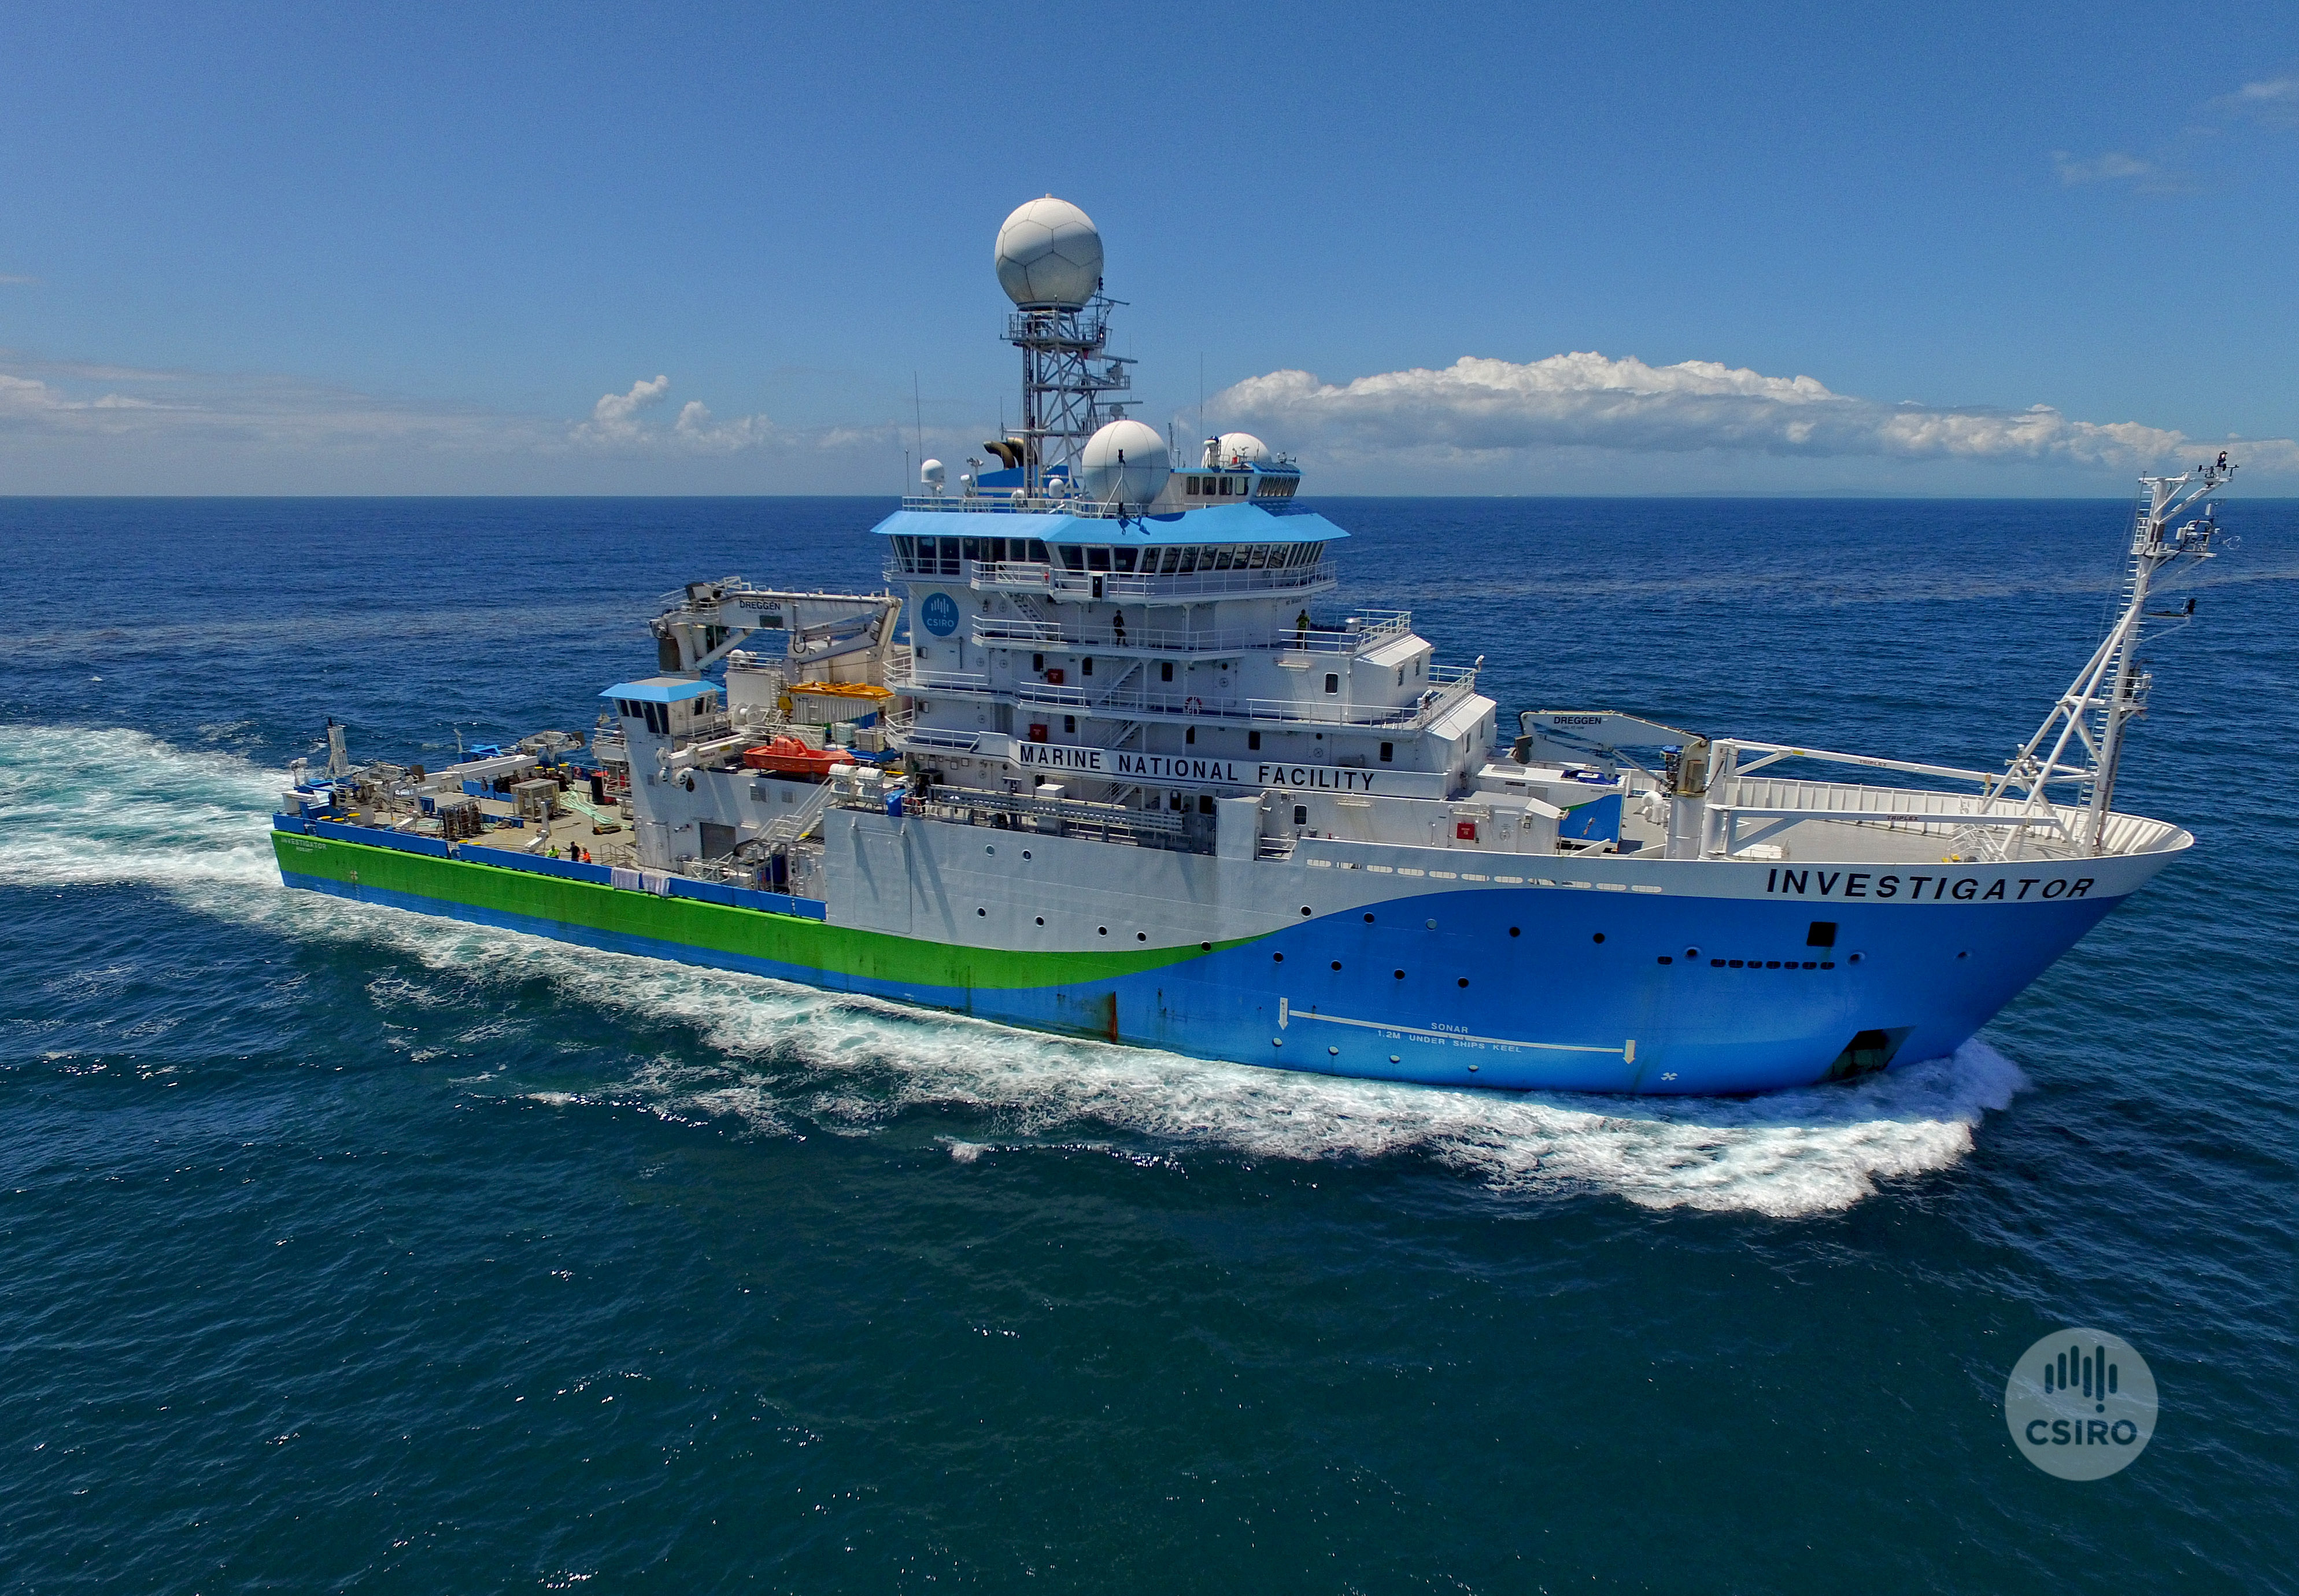 CSIRO's research vessel Investiagor on the water